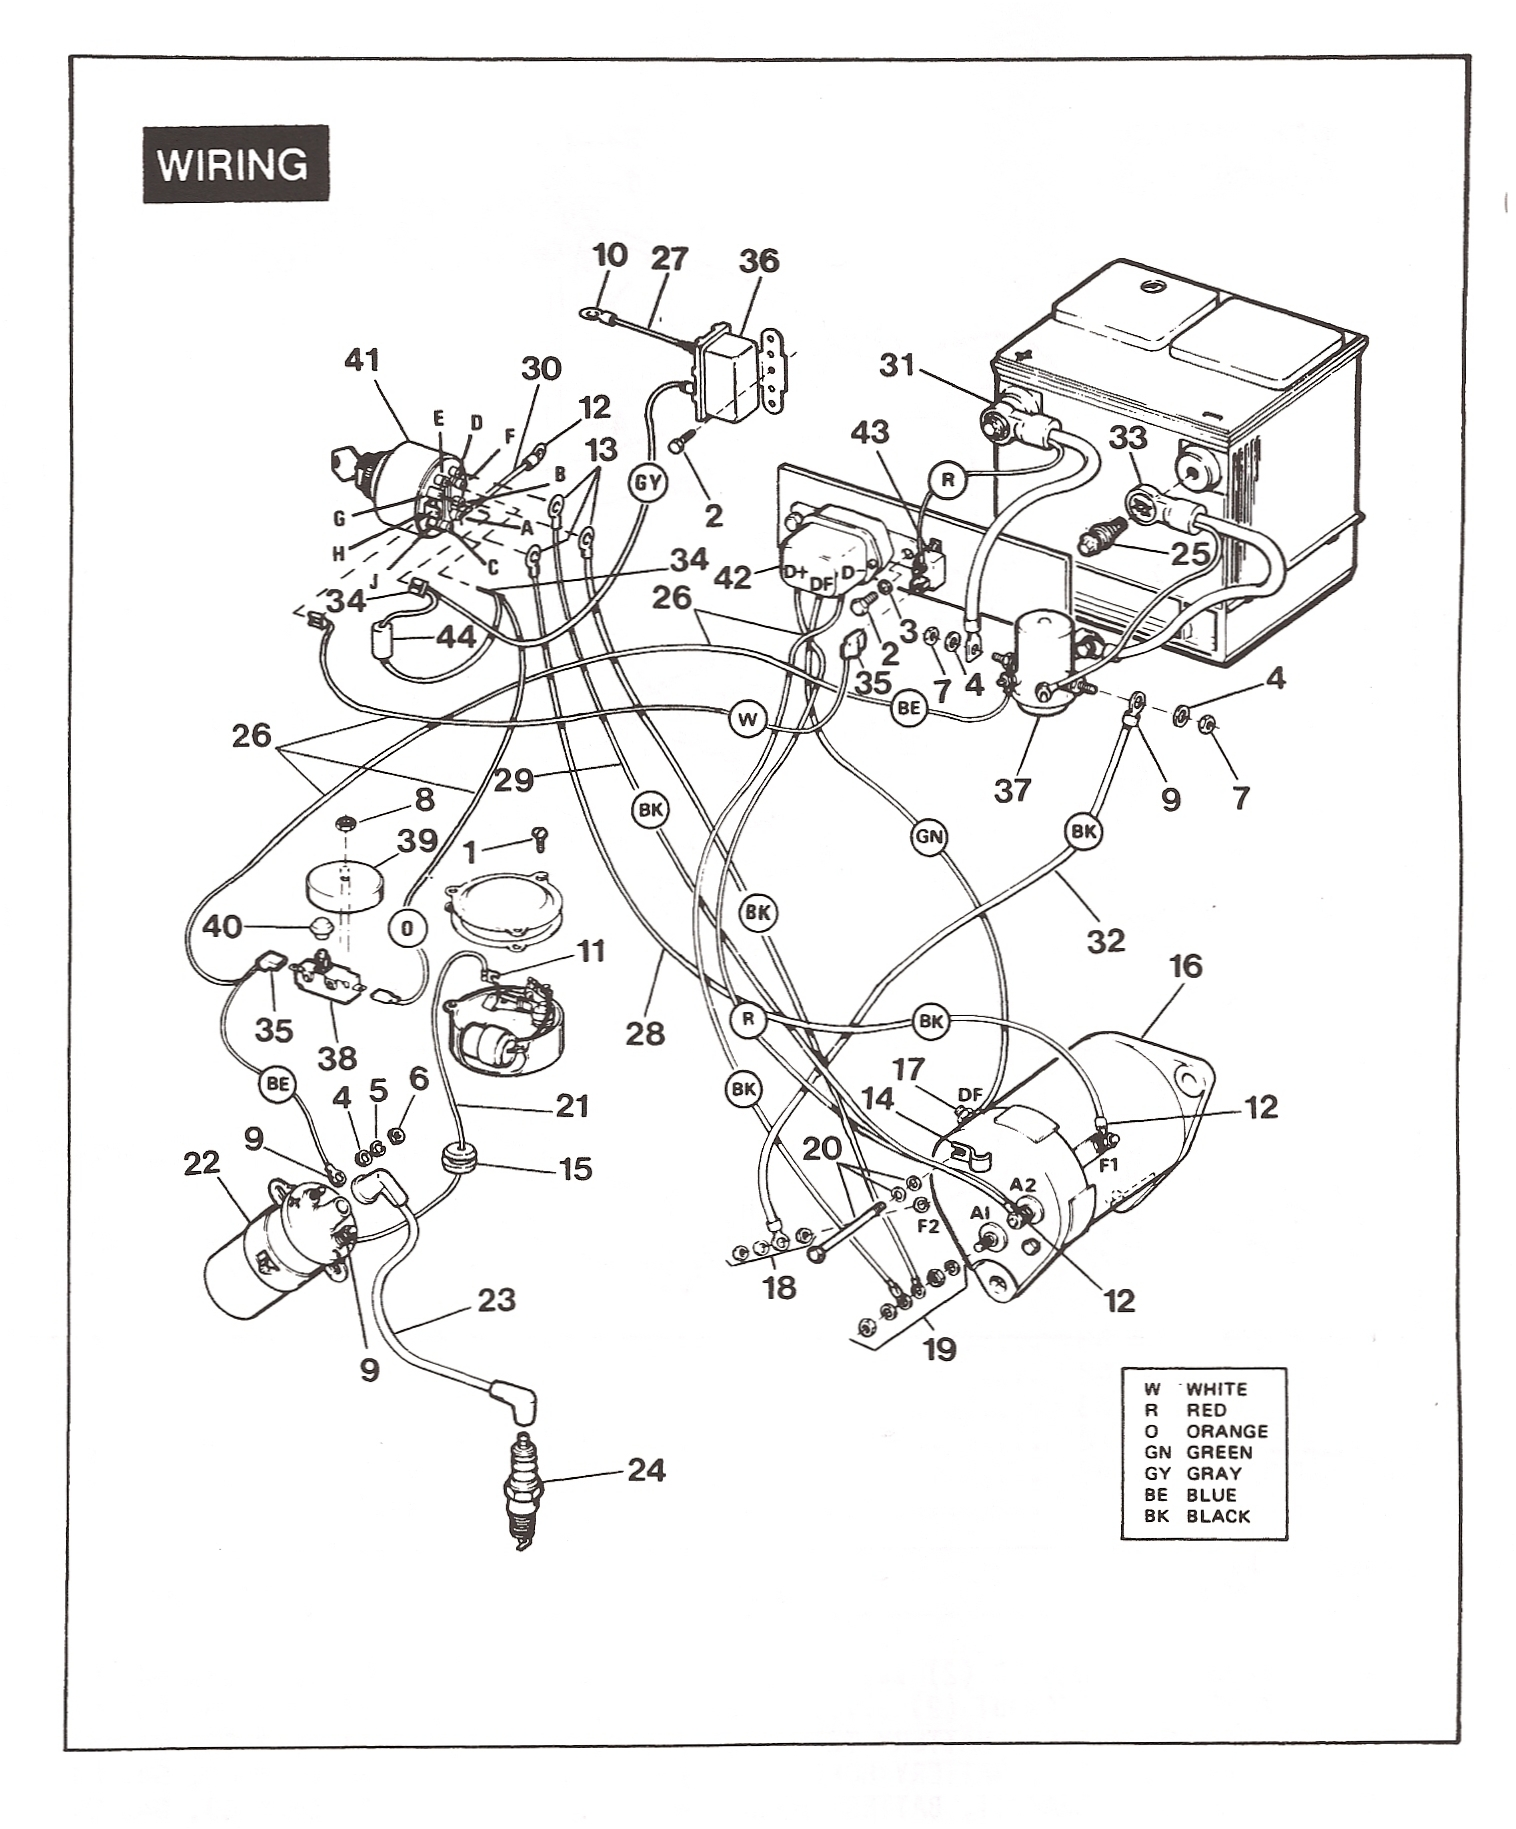 82 sportster wiring diagram wiring diagram for light switch u2022 rh drnatnews com